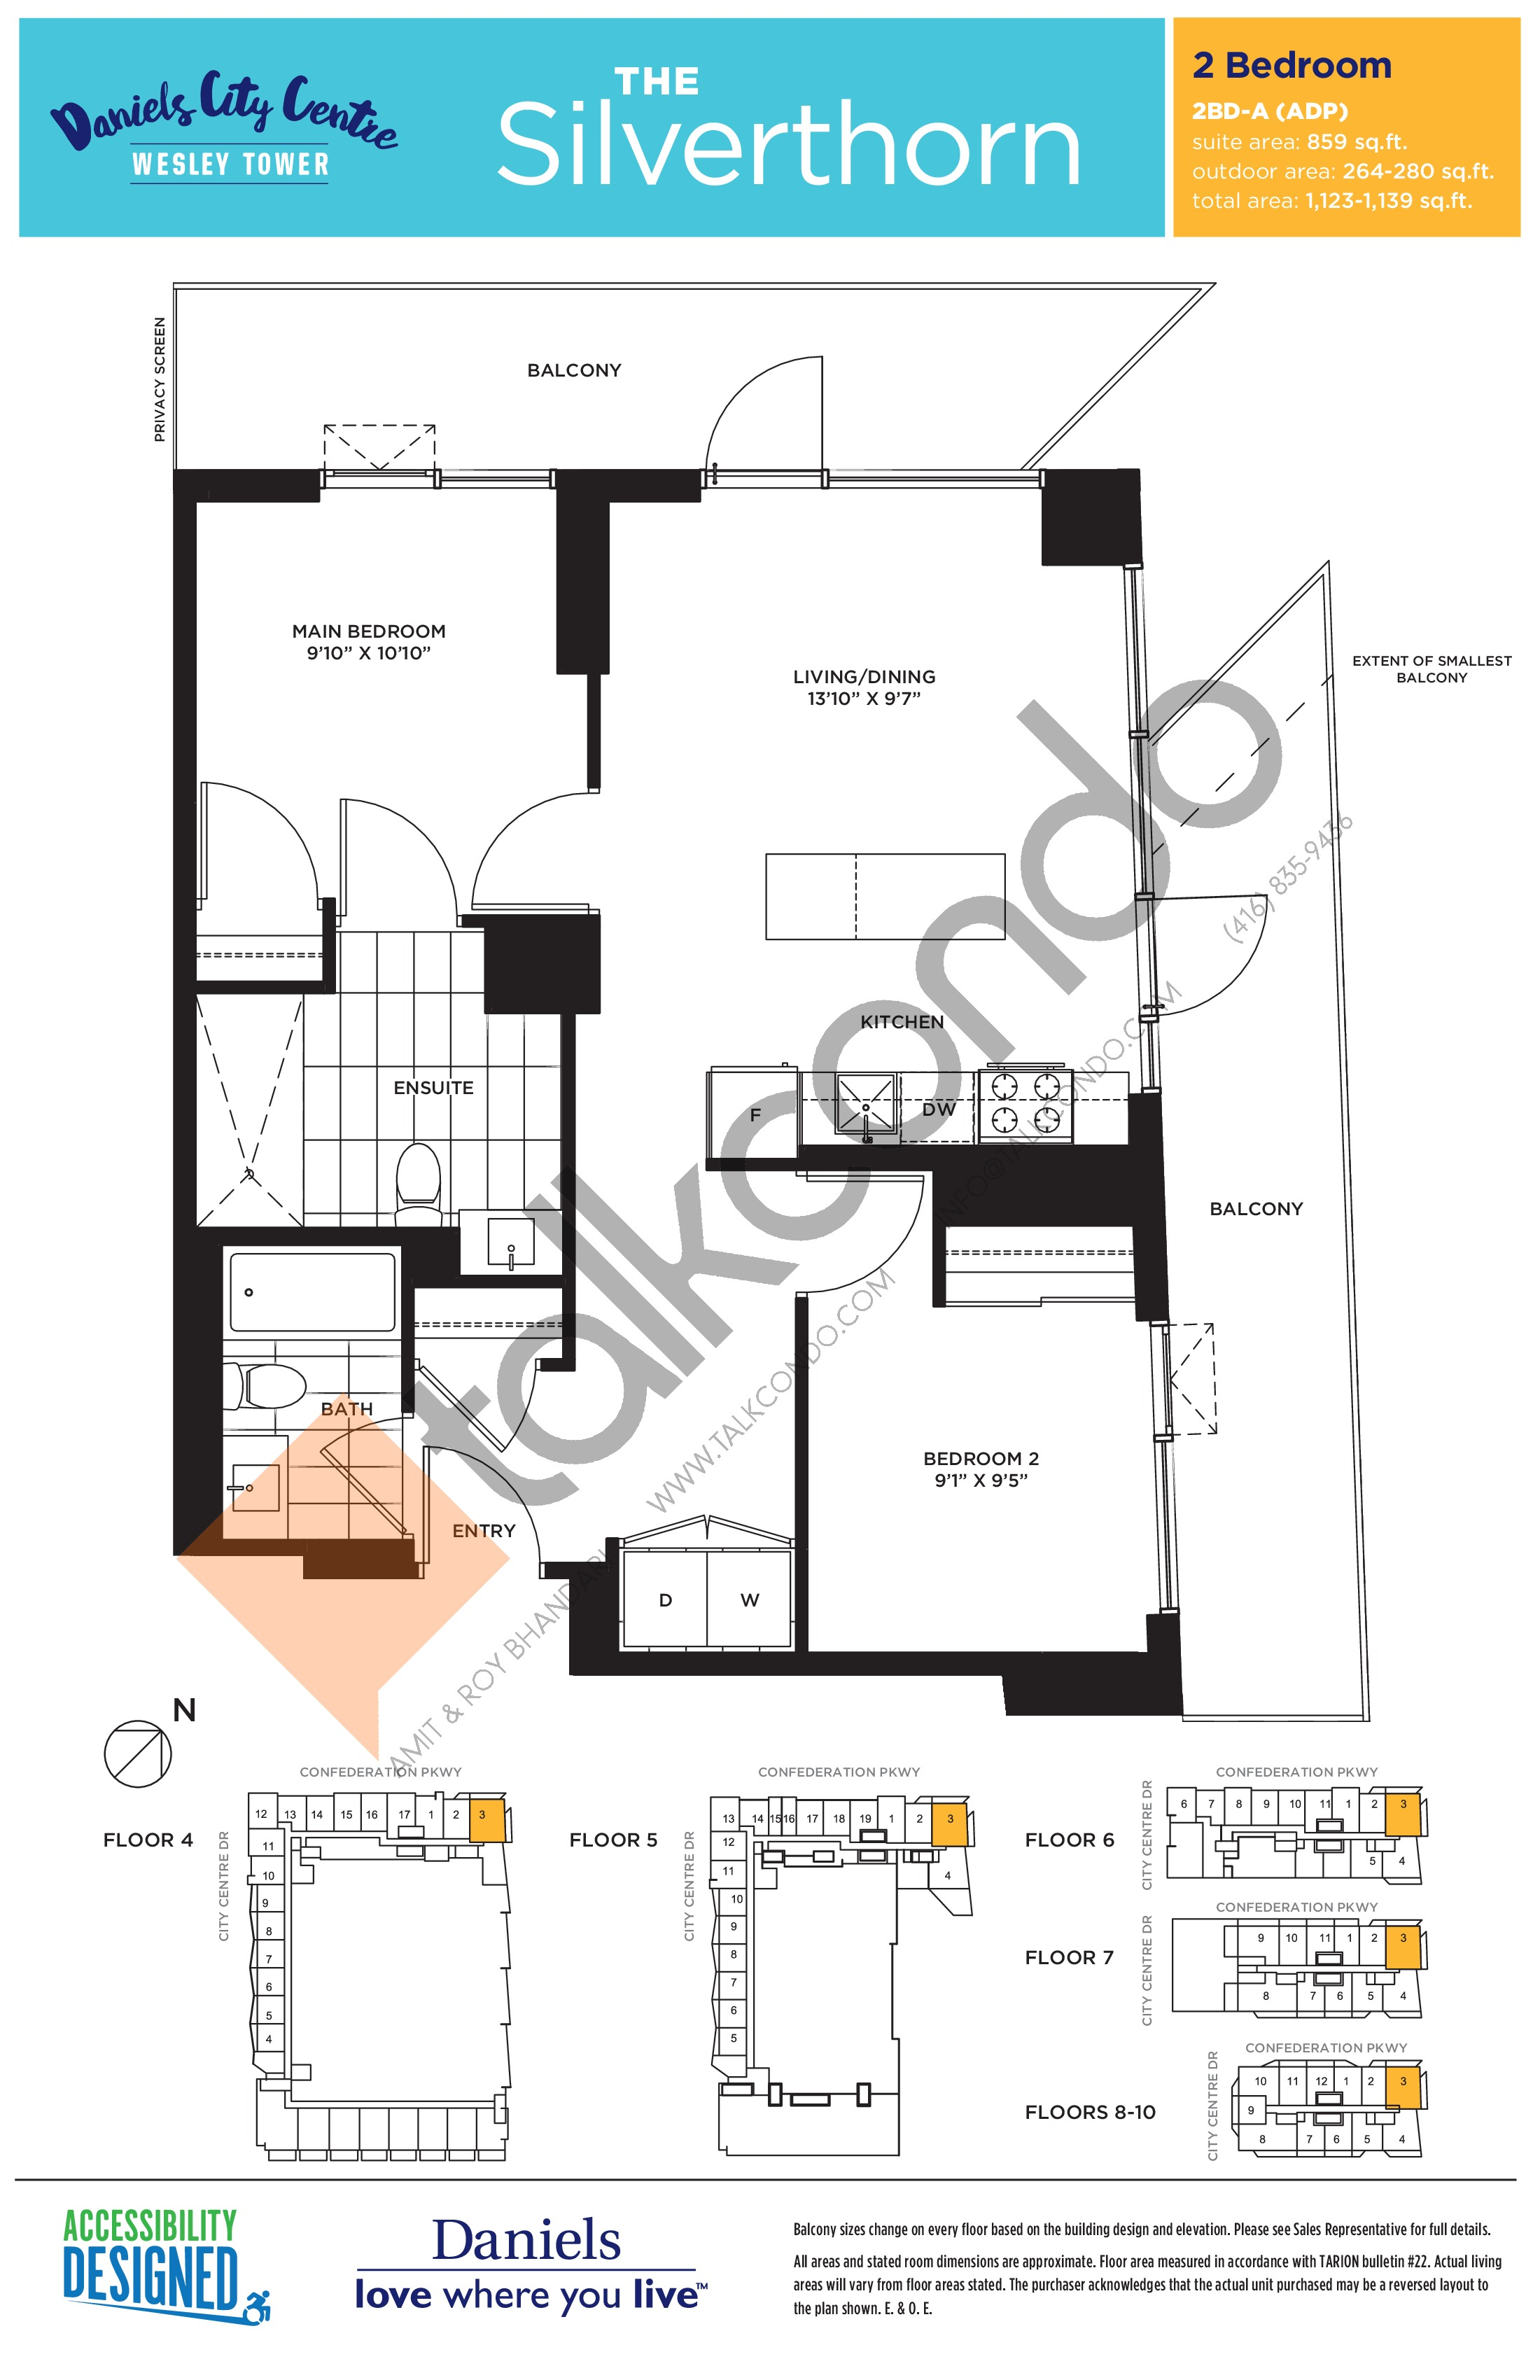 The Silverthorn Floor Plan at The Wesley Tower at Daniels City Centre Condos - 859 sq.ft